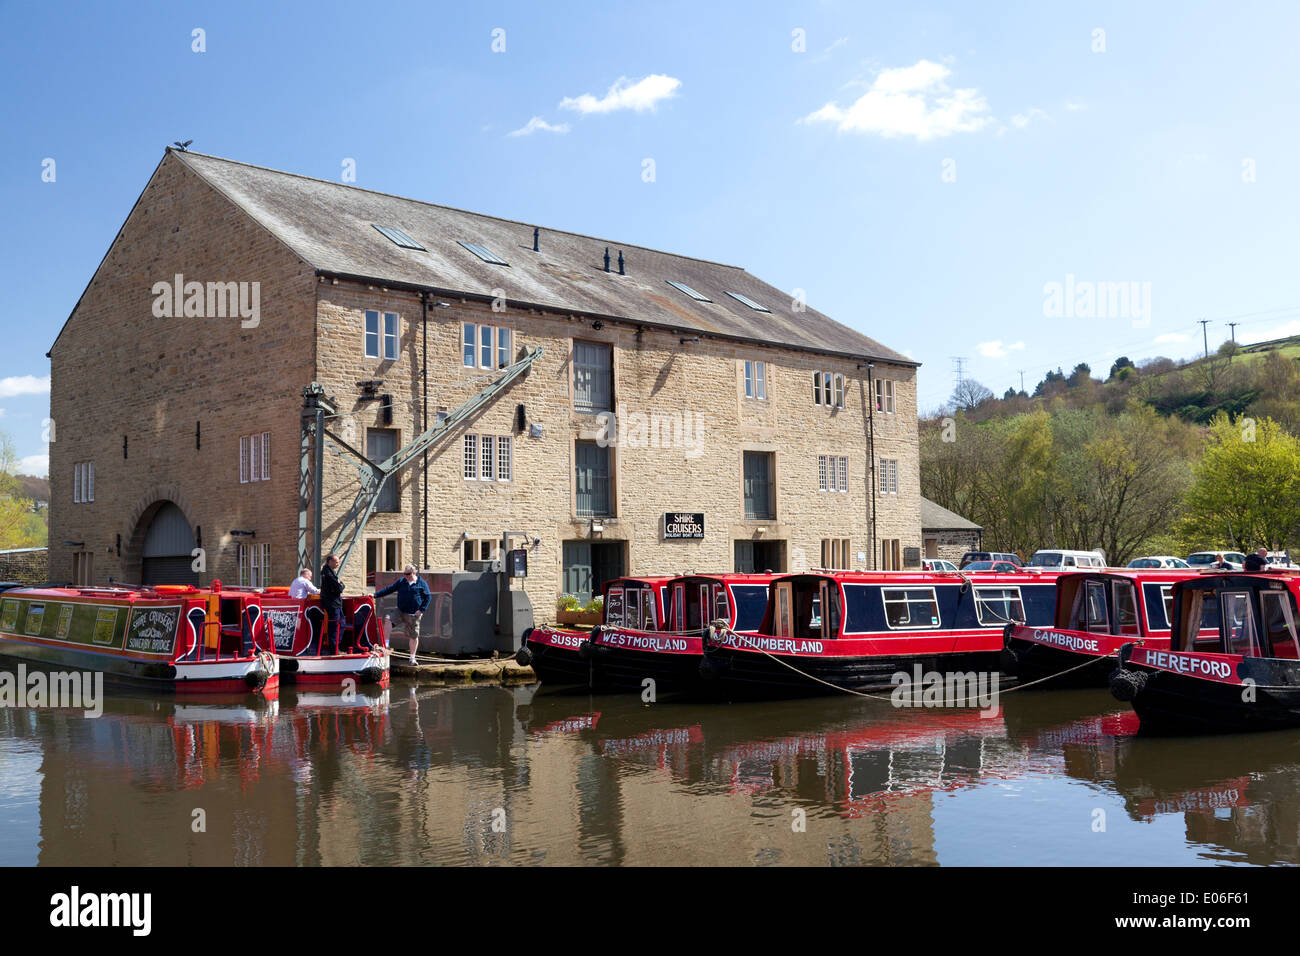 Boats from Shire Cruisers at their base at the Wharf, Sowerby Bridge, West Yorkshire - Stock Image